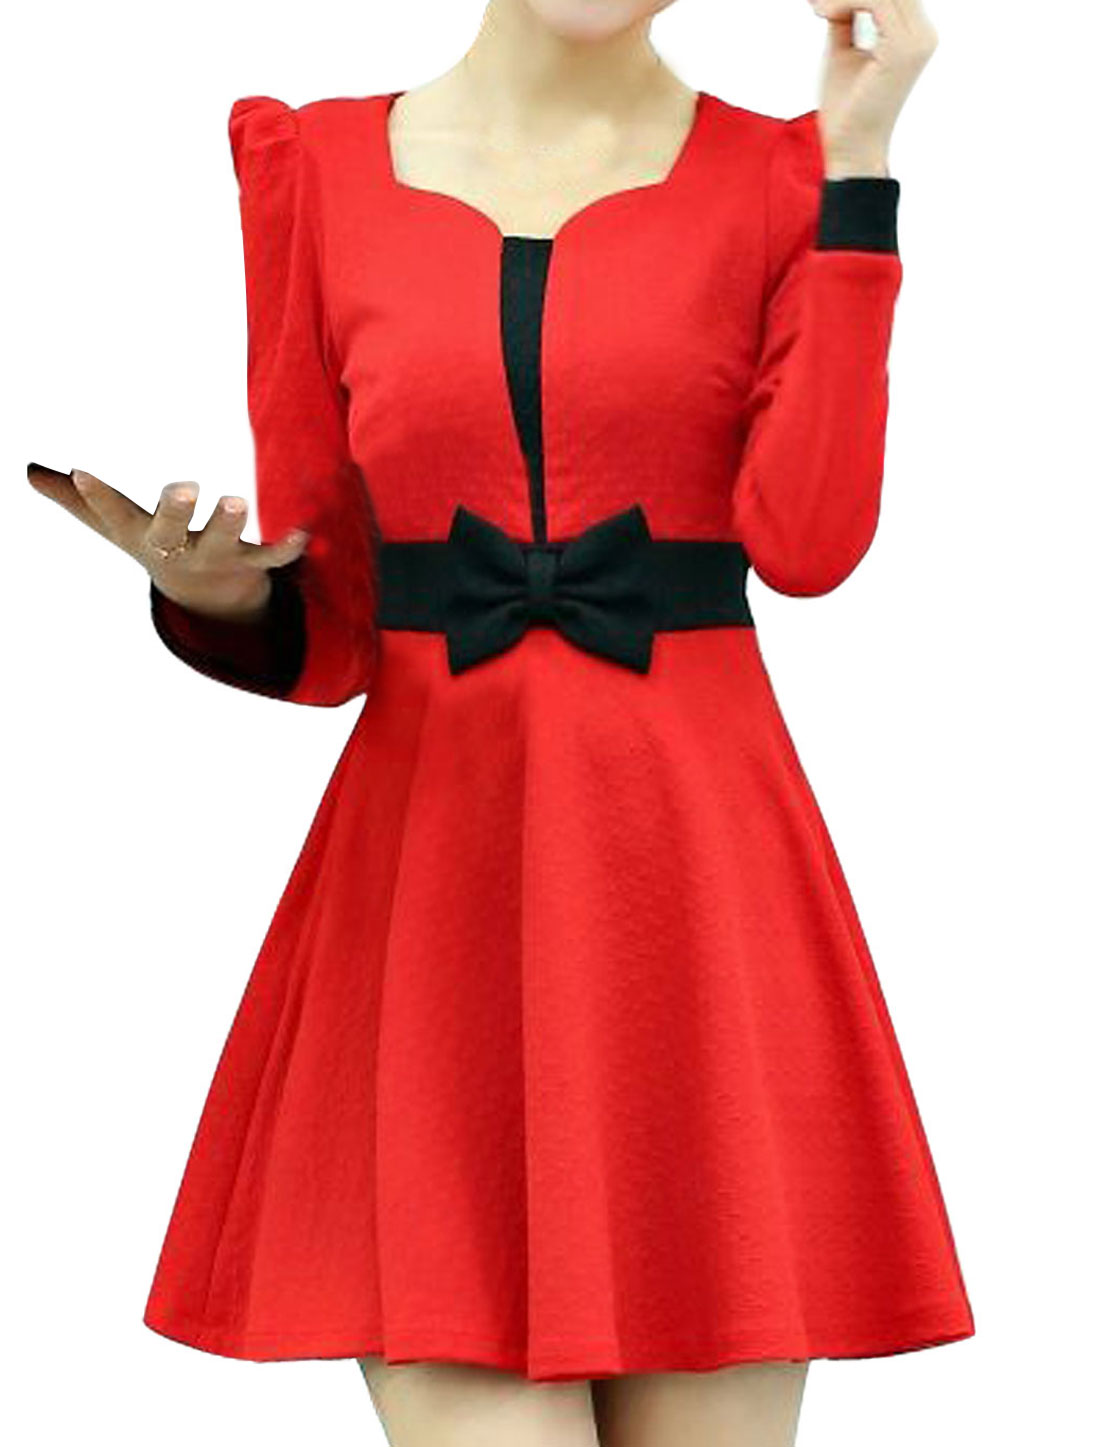 Women Scallop Neck Contrast Color Leisure A-Line Dress Red S